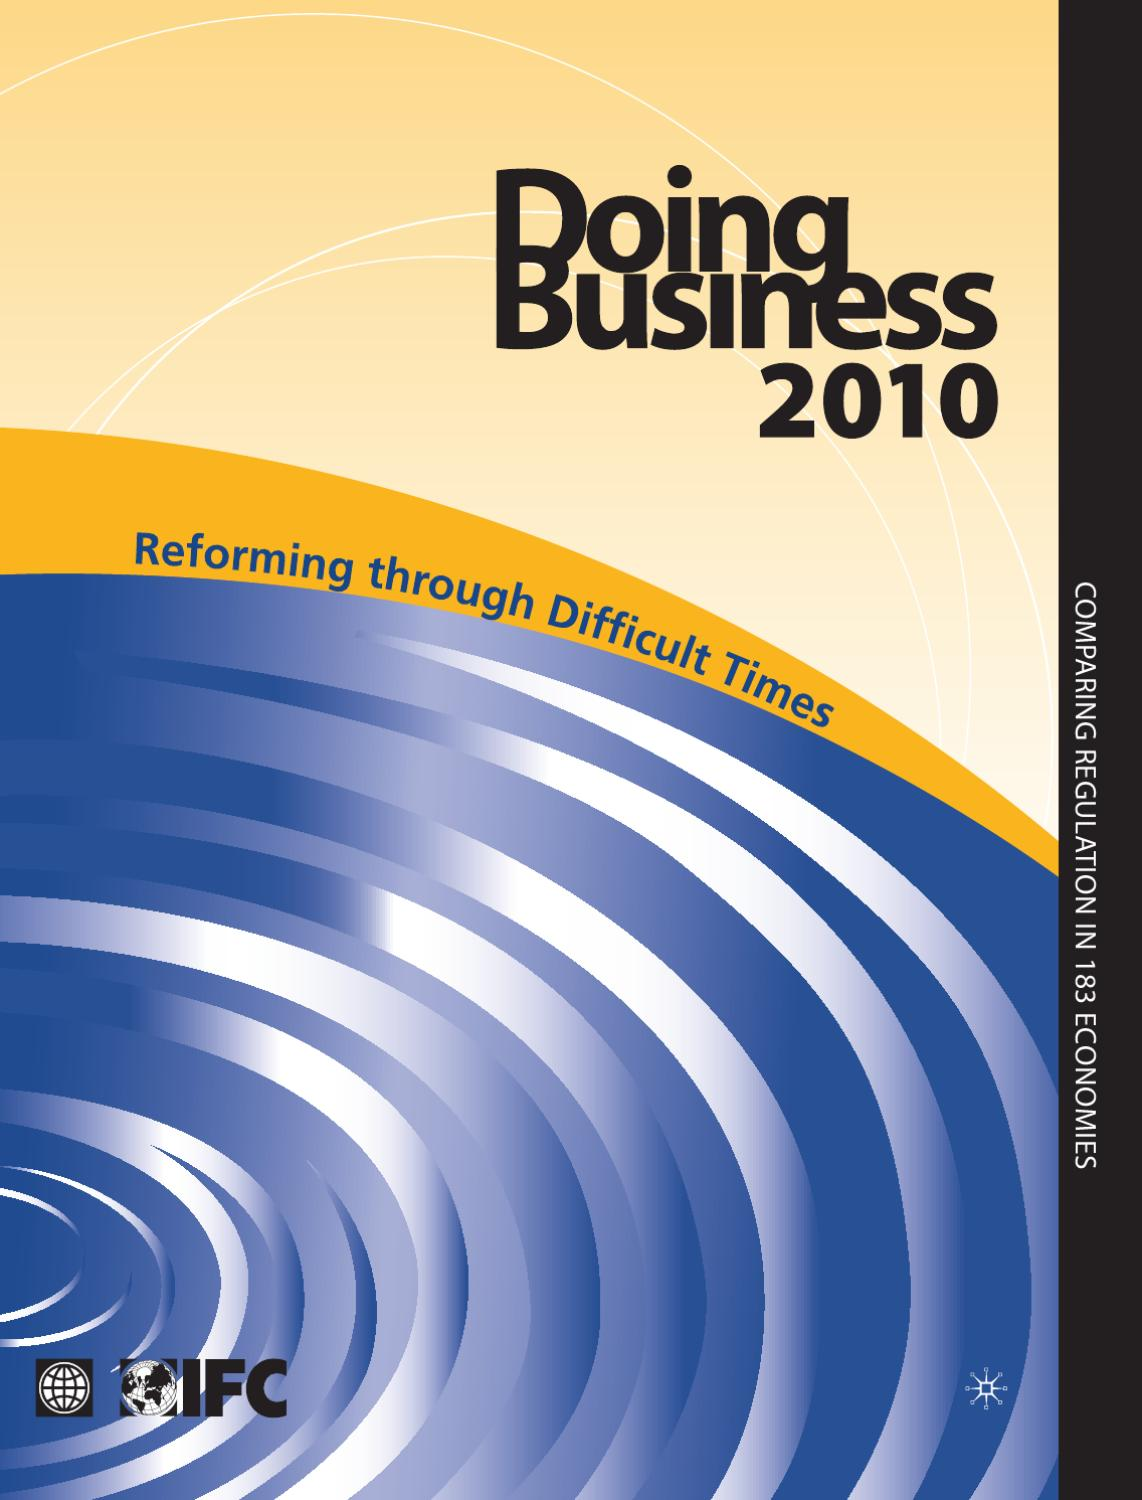 Doing Business 2010 by World Bank Publications - issuu